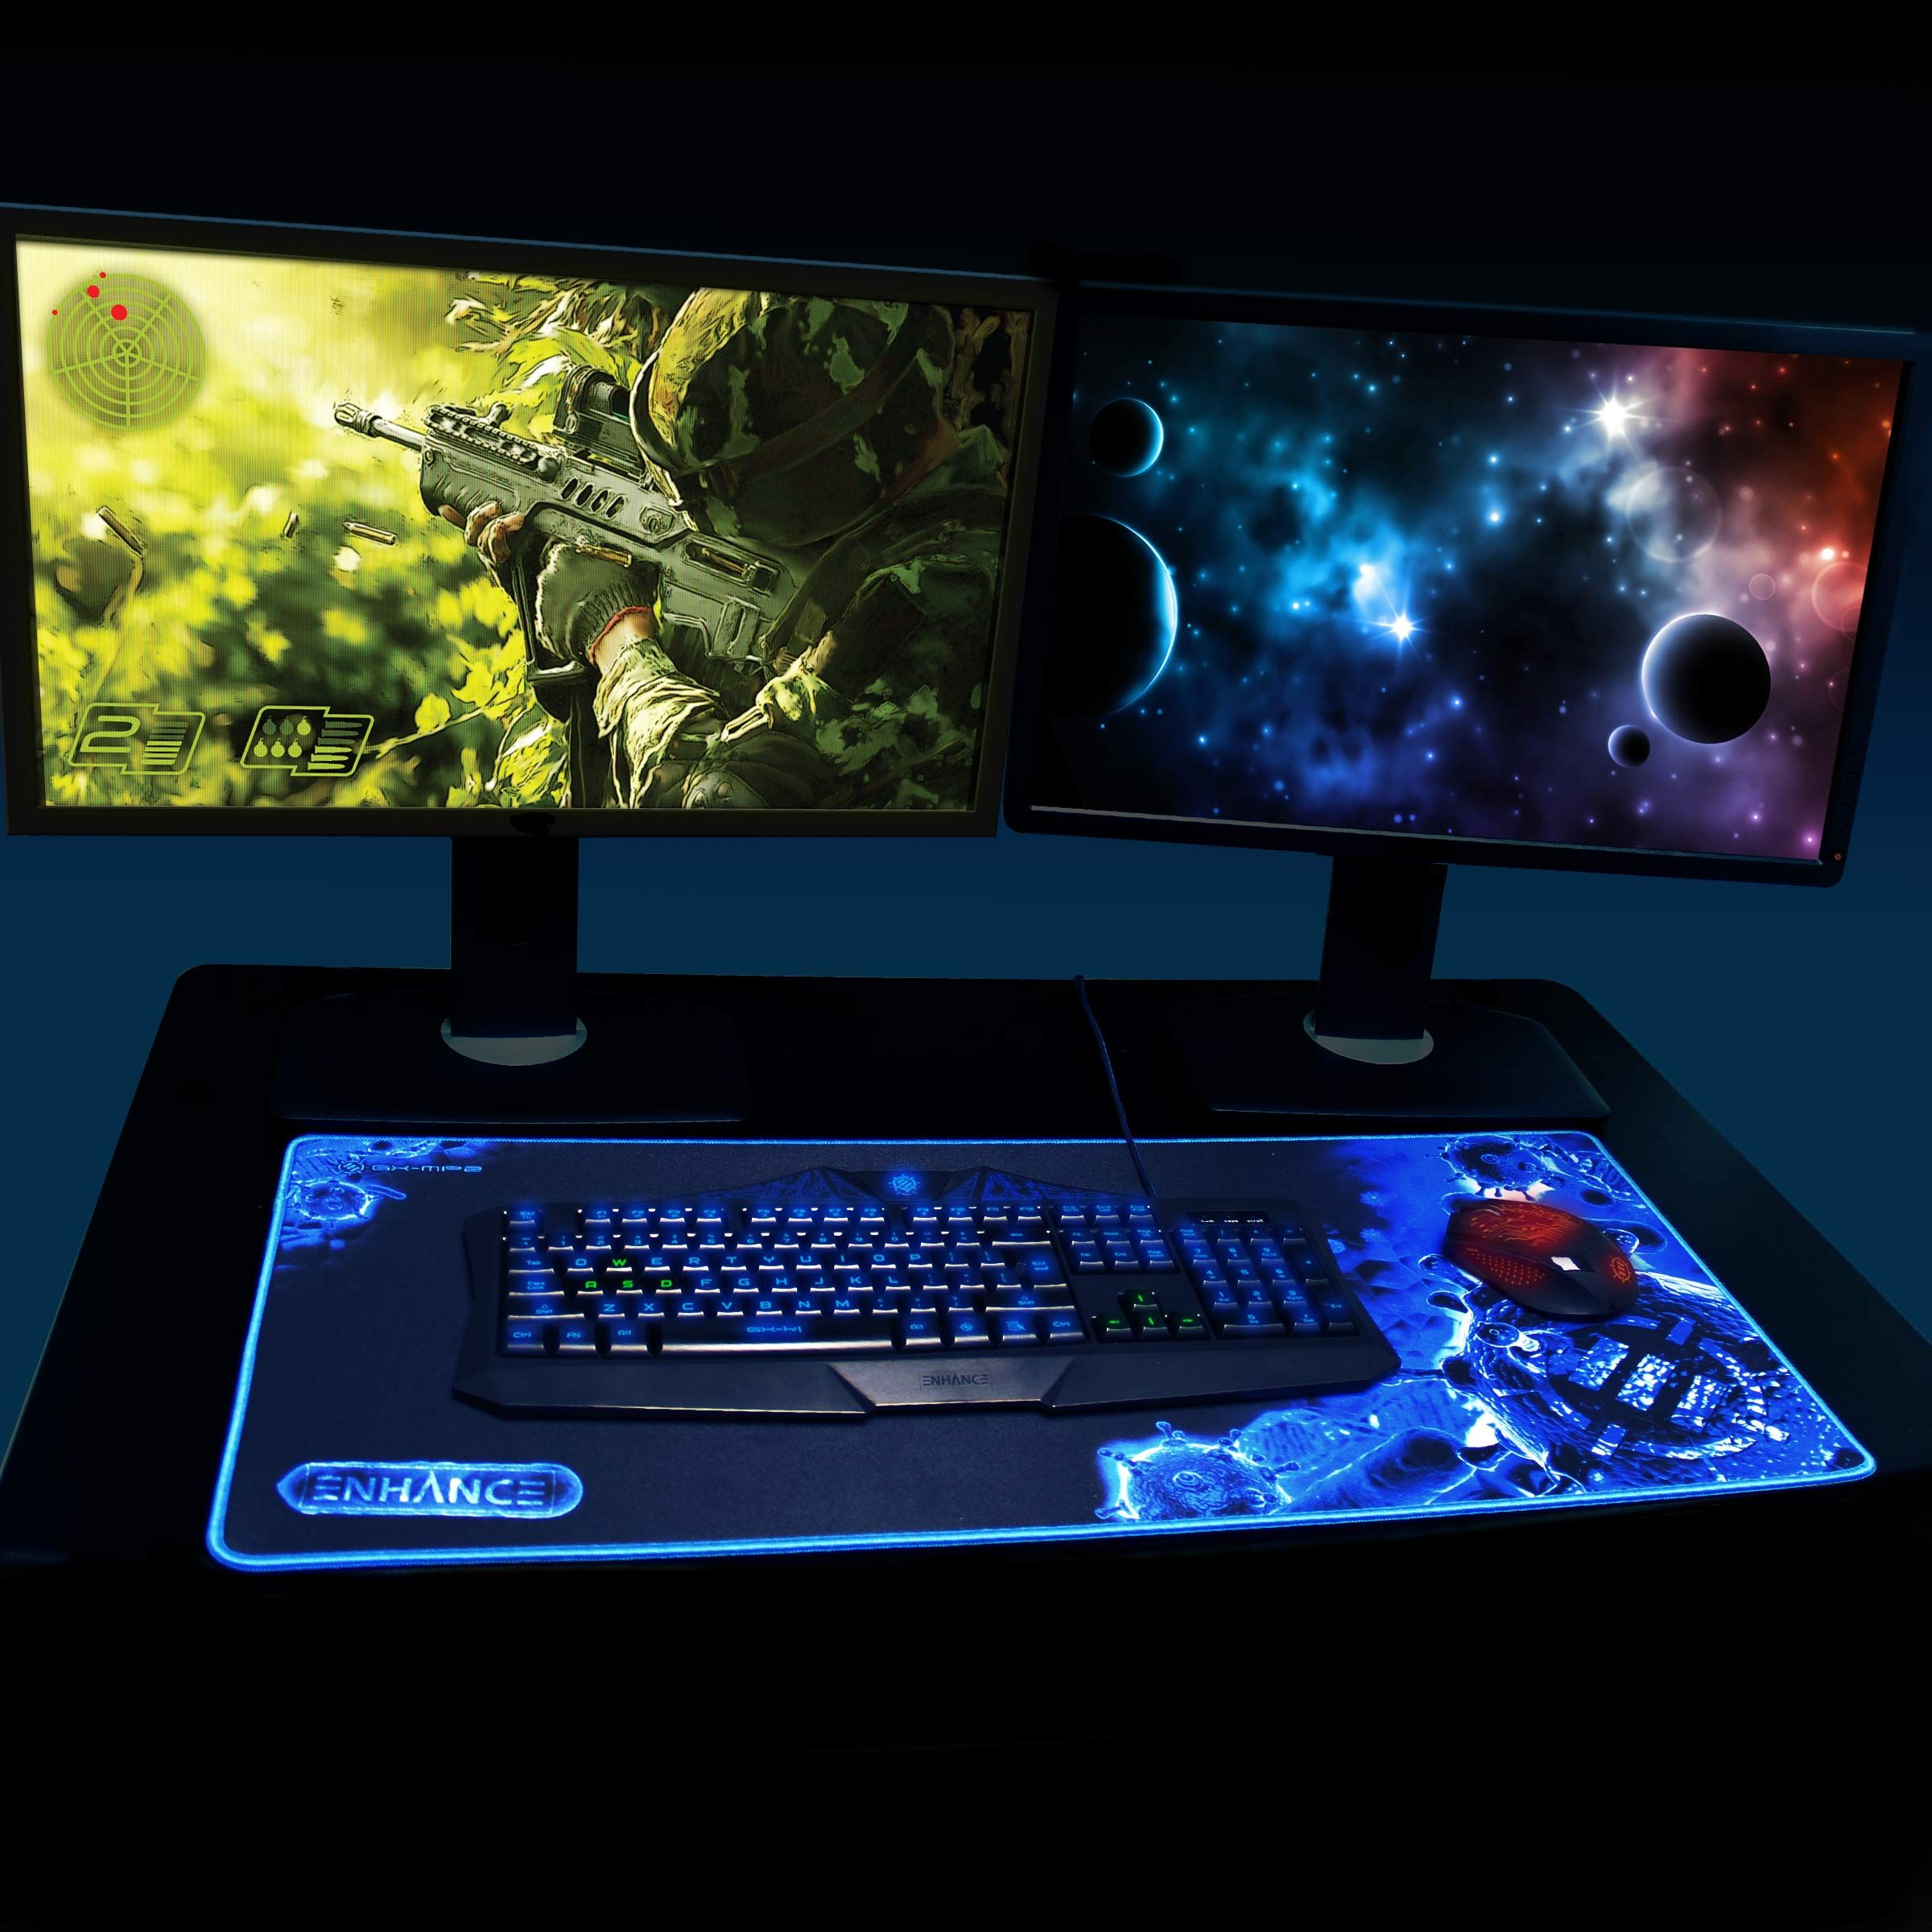 Enhance Gx Mp2 Extra Large Gaming Mouse Pad Mat With Ultra